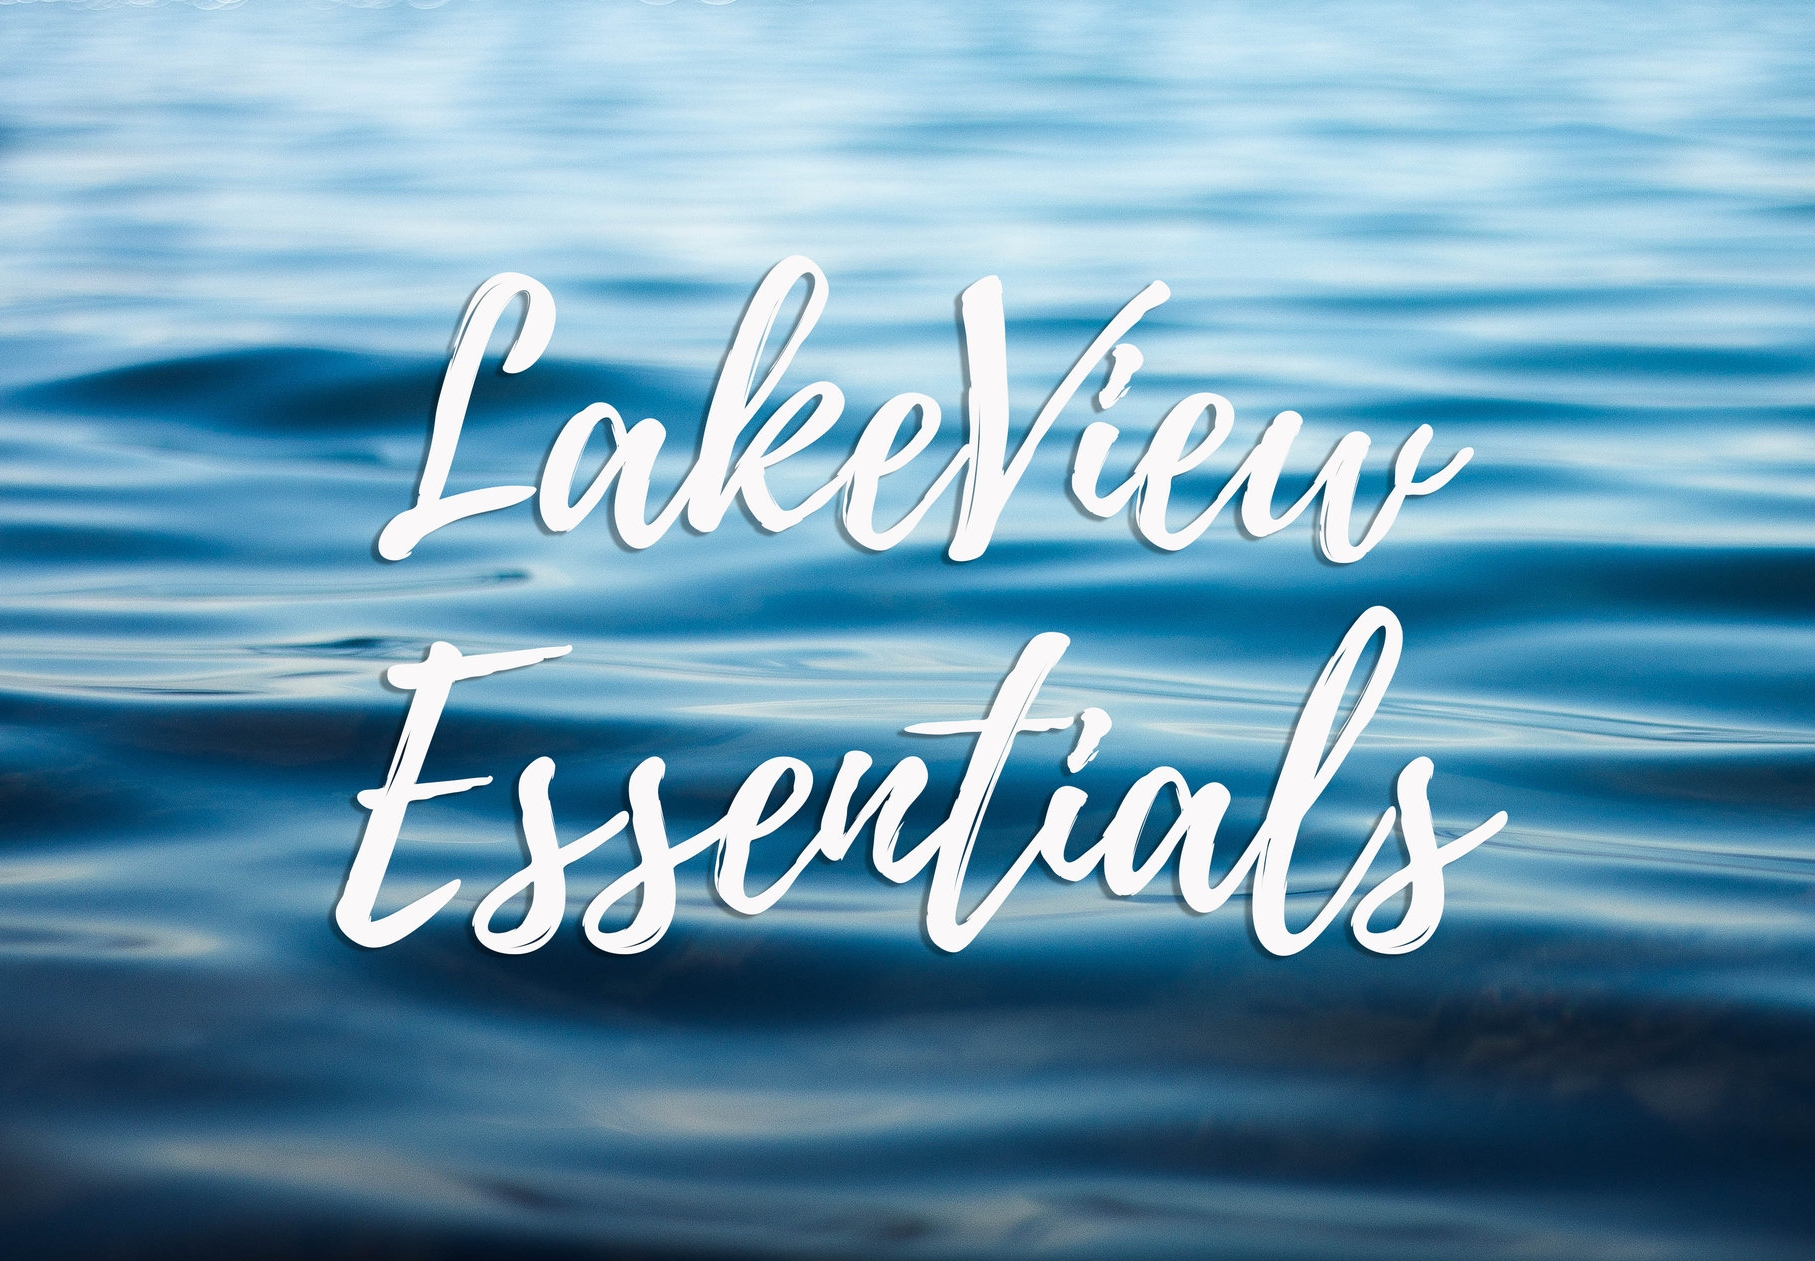 LakeViewEssentials.jpg